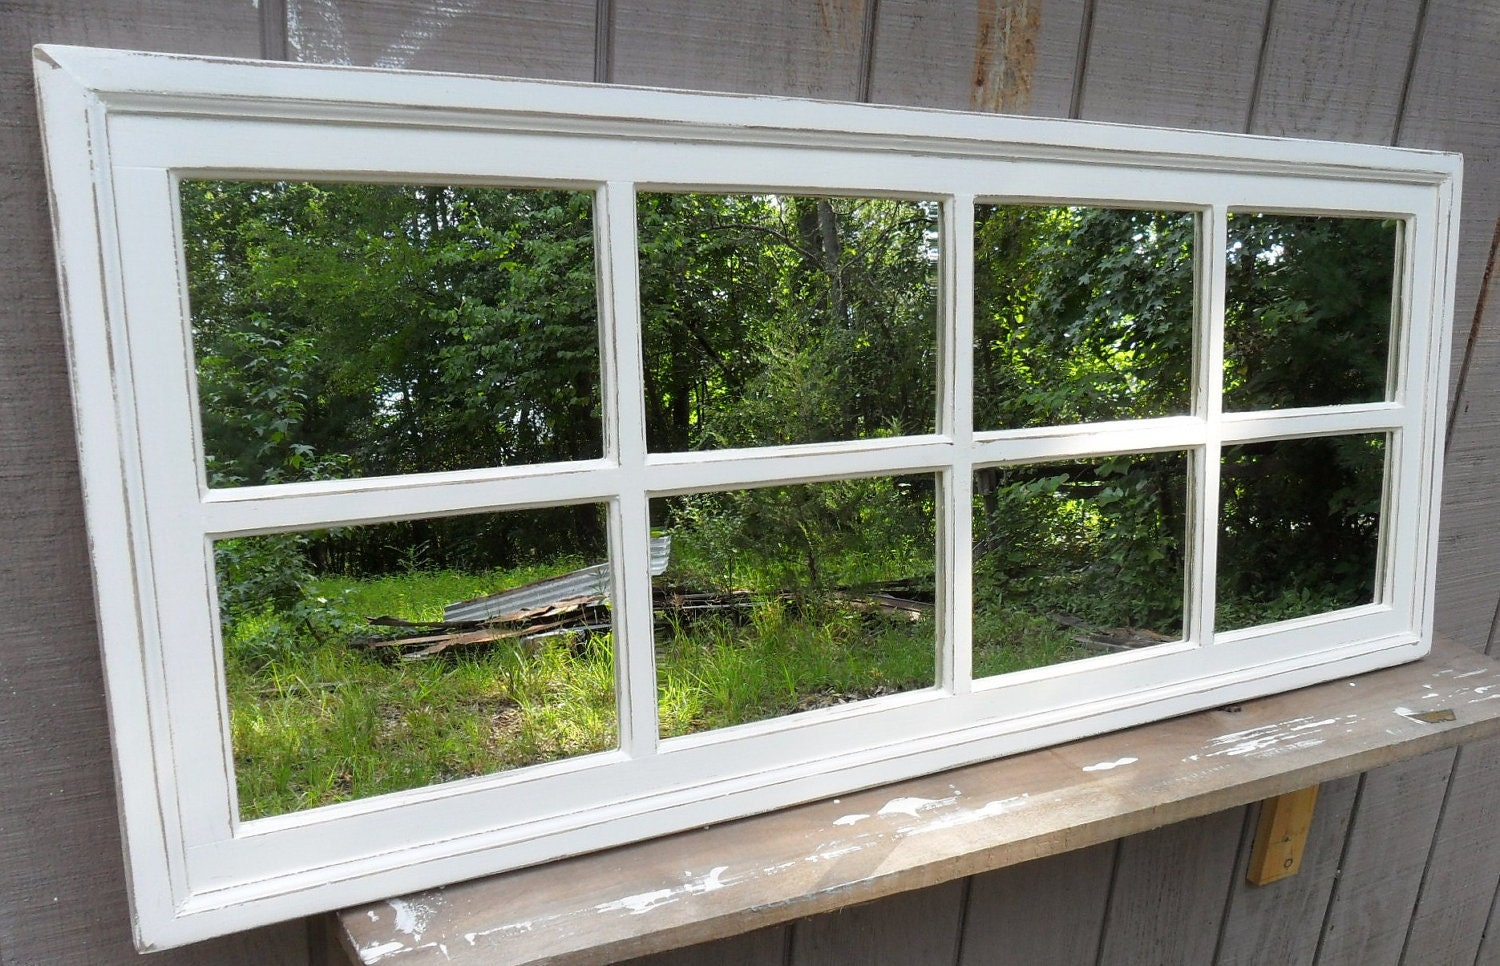 Window mirror rustic barnwood window mirror 24 x 24 9 pane for 2 pane window